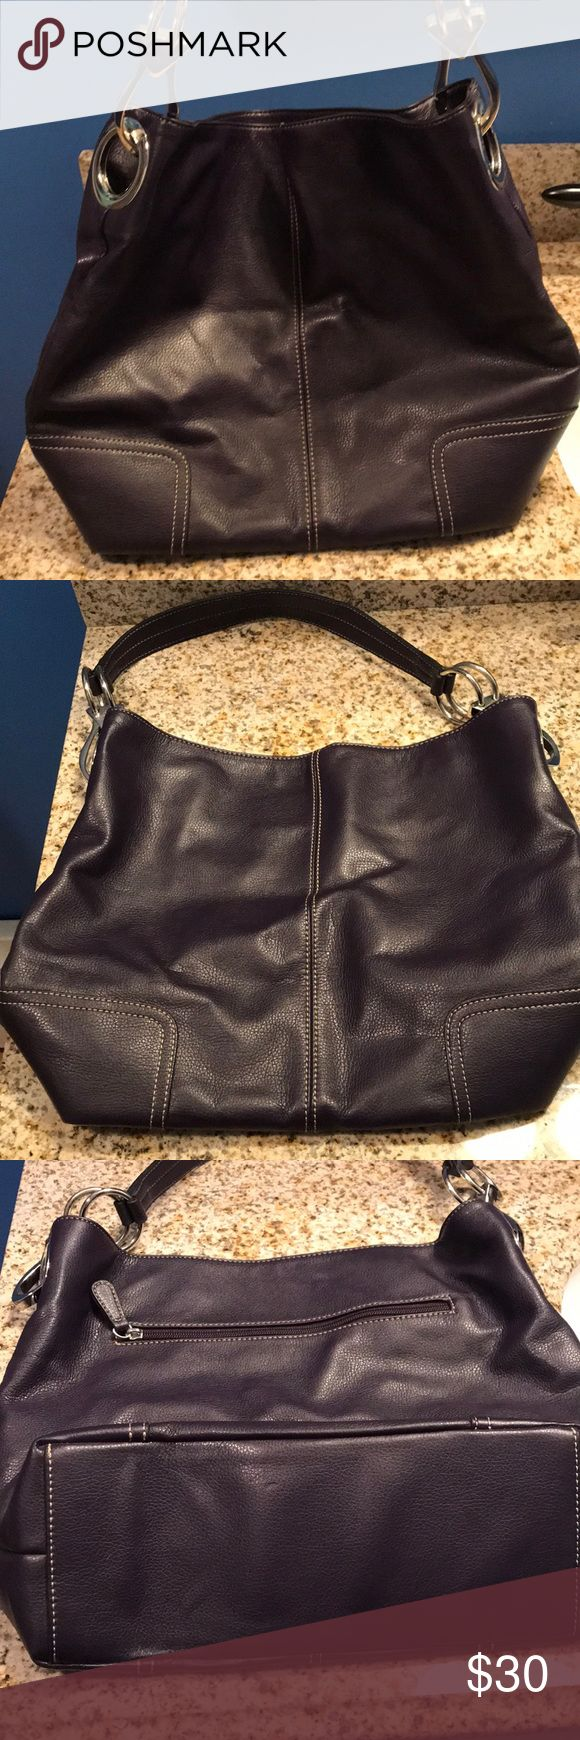 Large Dark Purple shoulder bag Brand new (no tags). Never used, perfect condition. Clean, roomy dark purple shoulder bag. Magnetic closures, large silver clasps. No name brand.  ⭐️ Non Smoking Home ⭐️ No Trades Bags Shoulder Bags